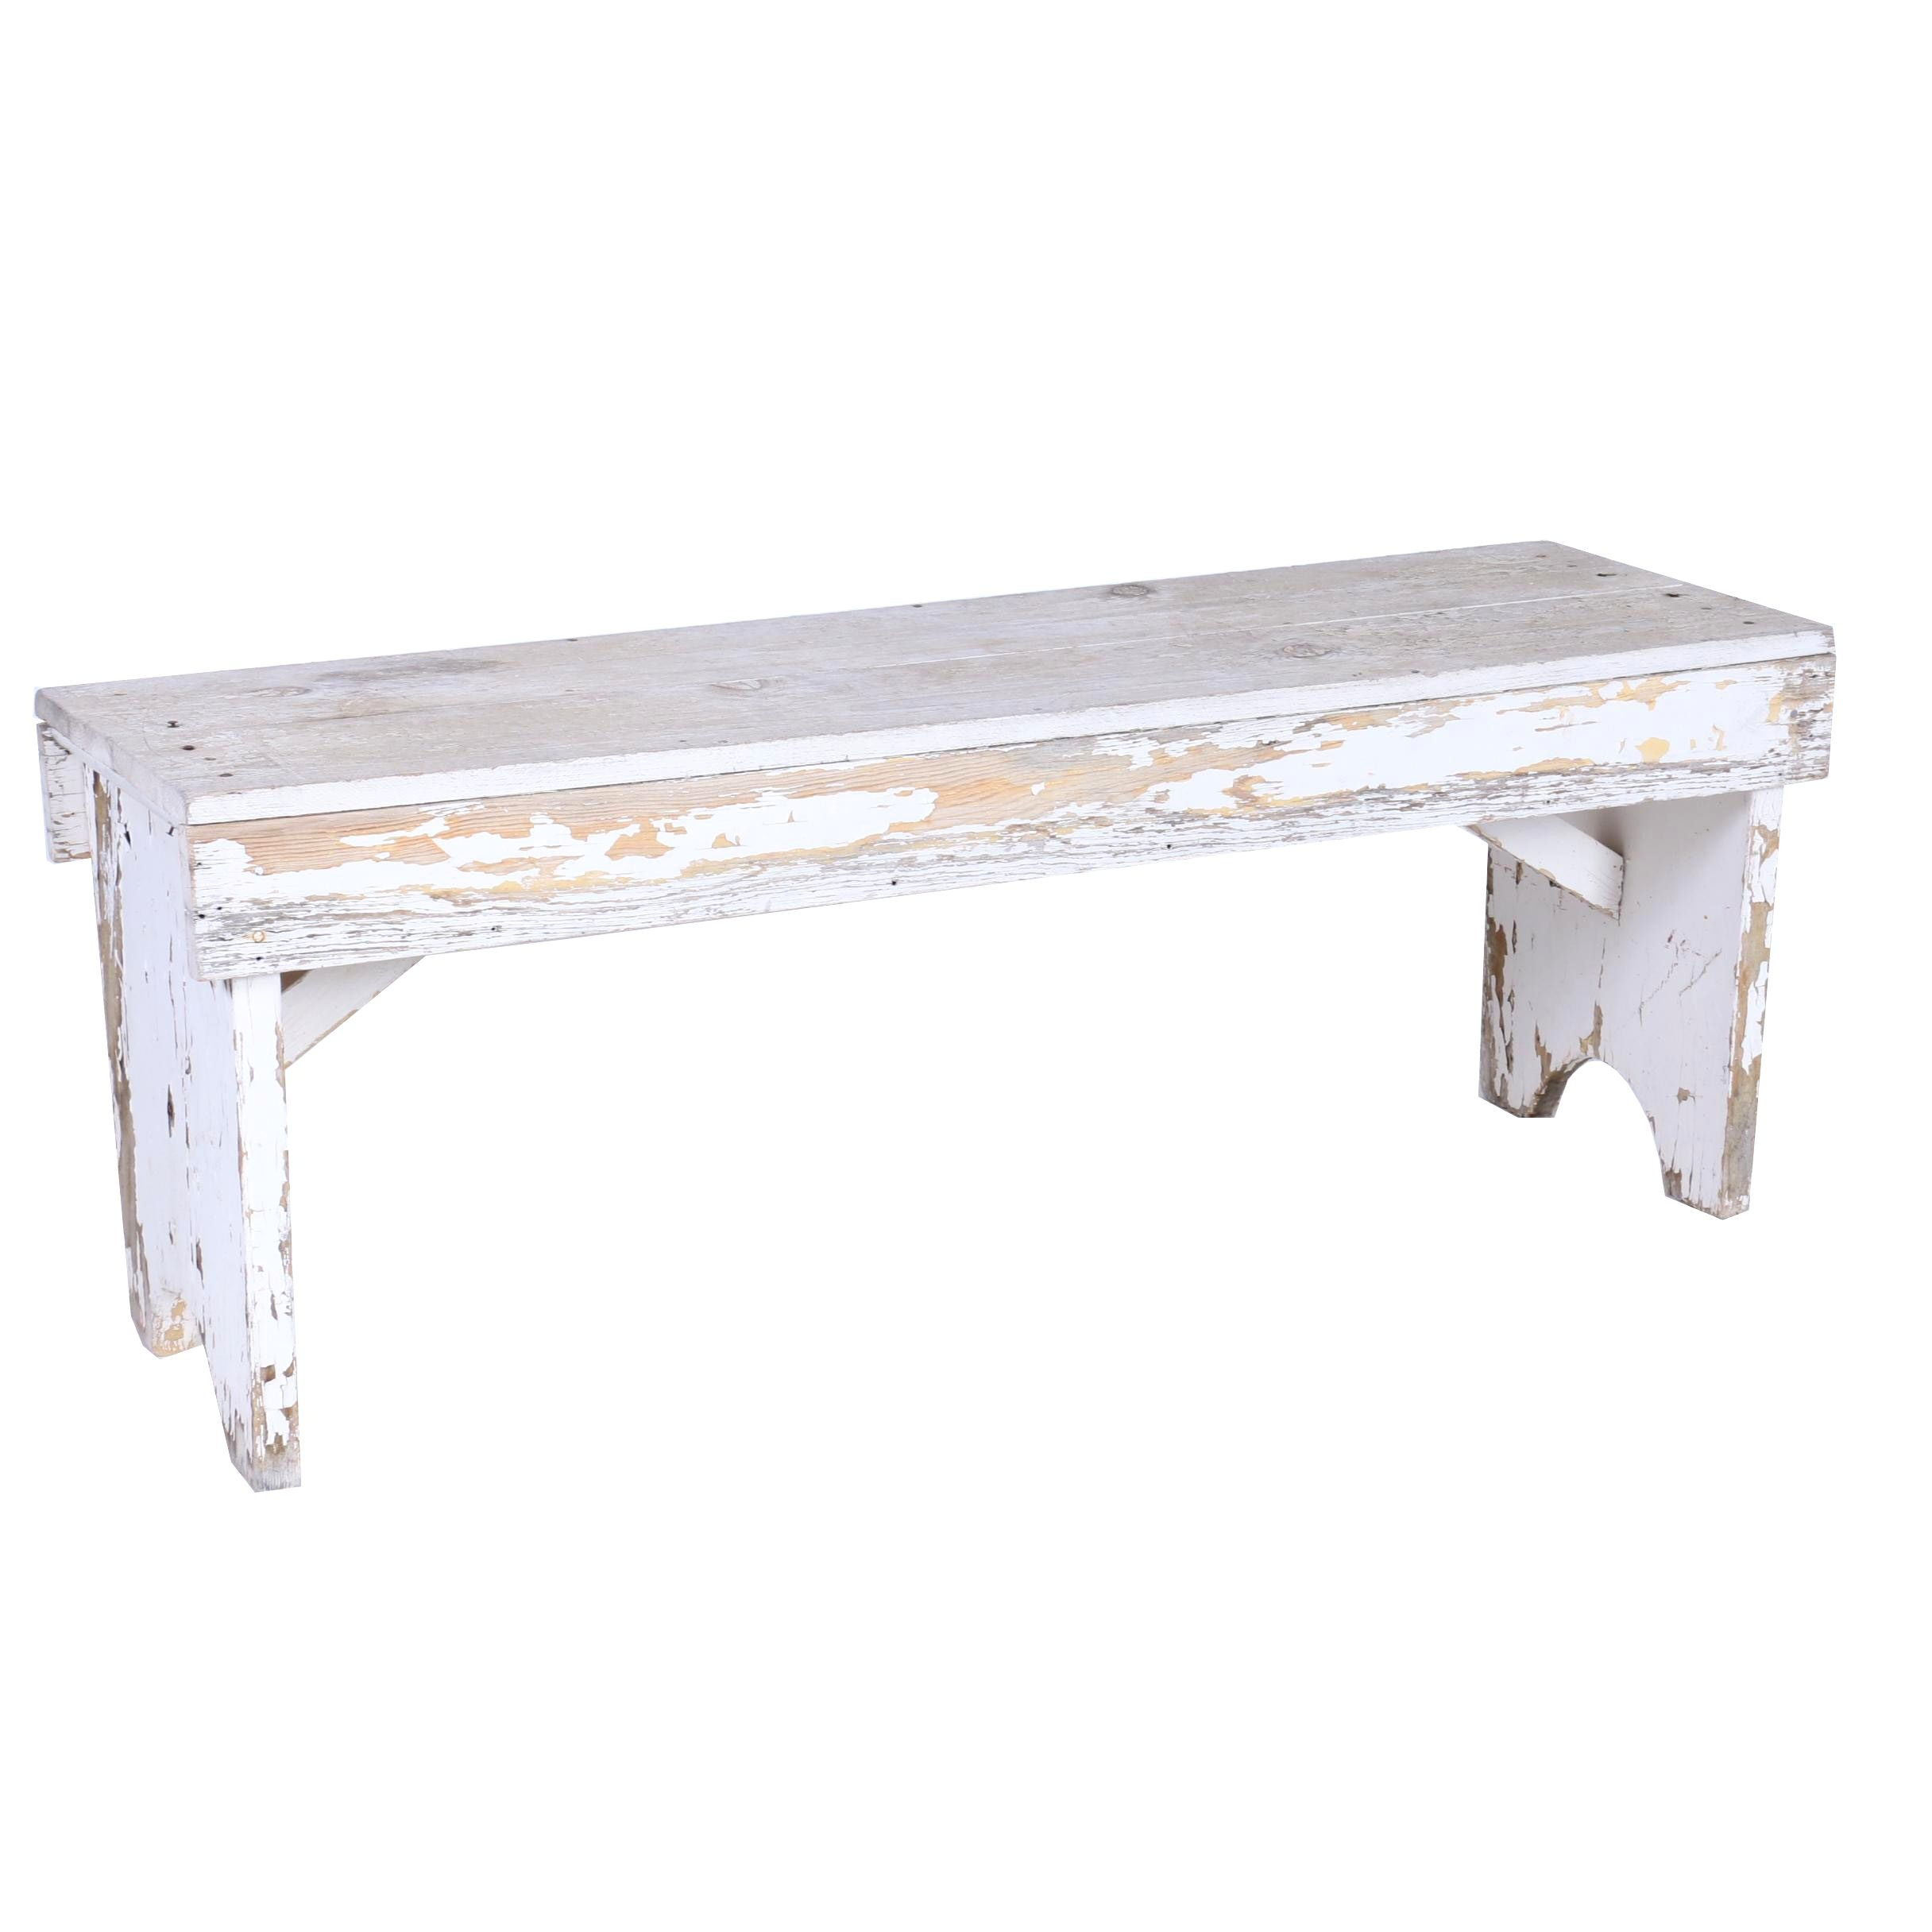 Vintage Country Bench in White Paint